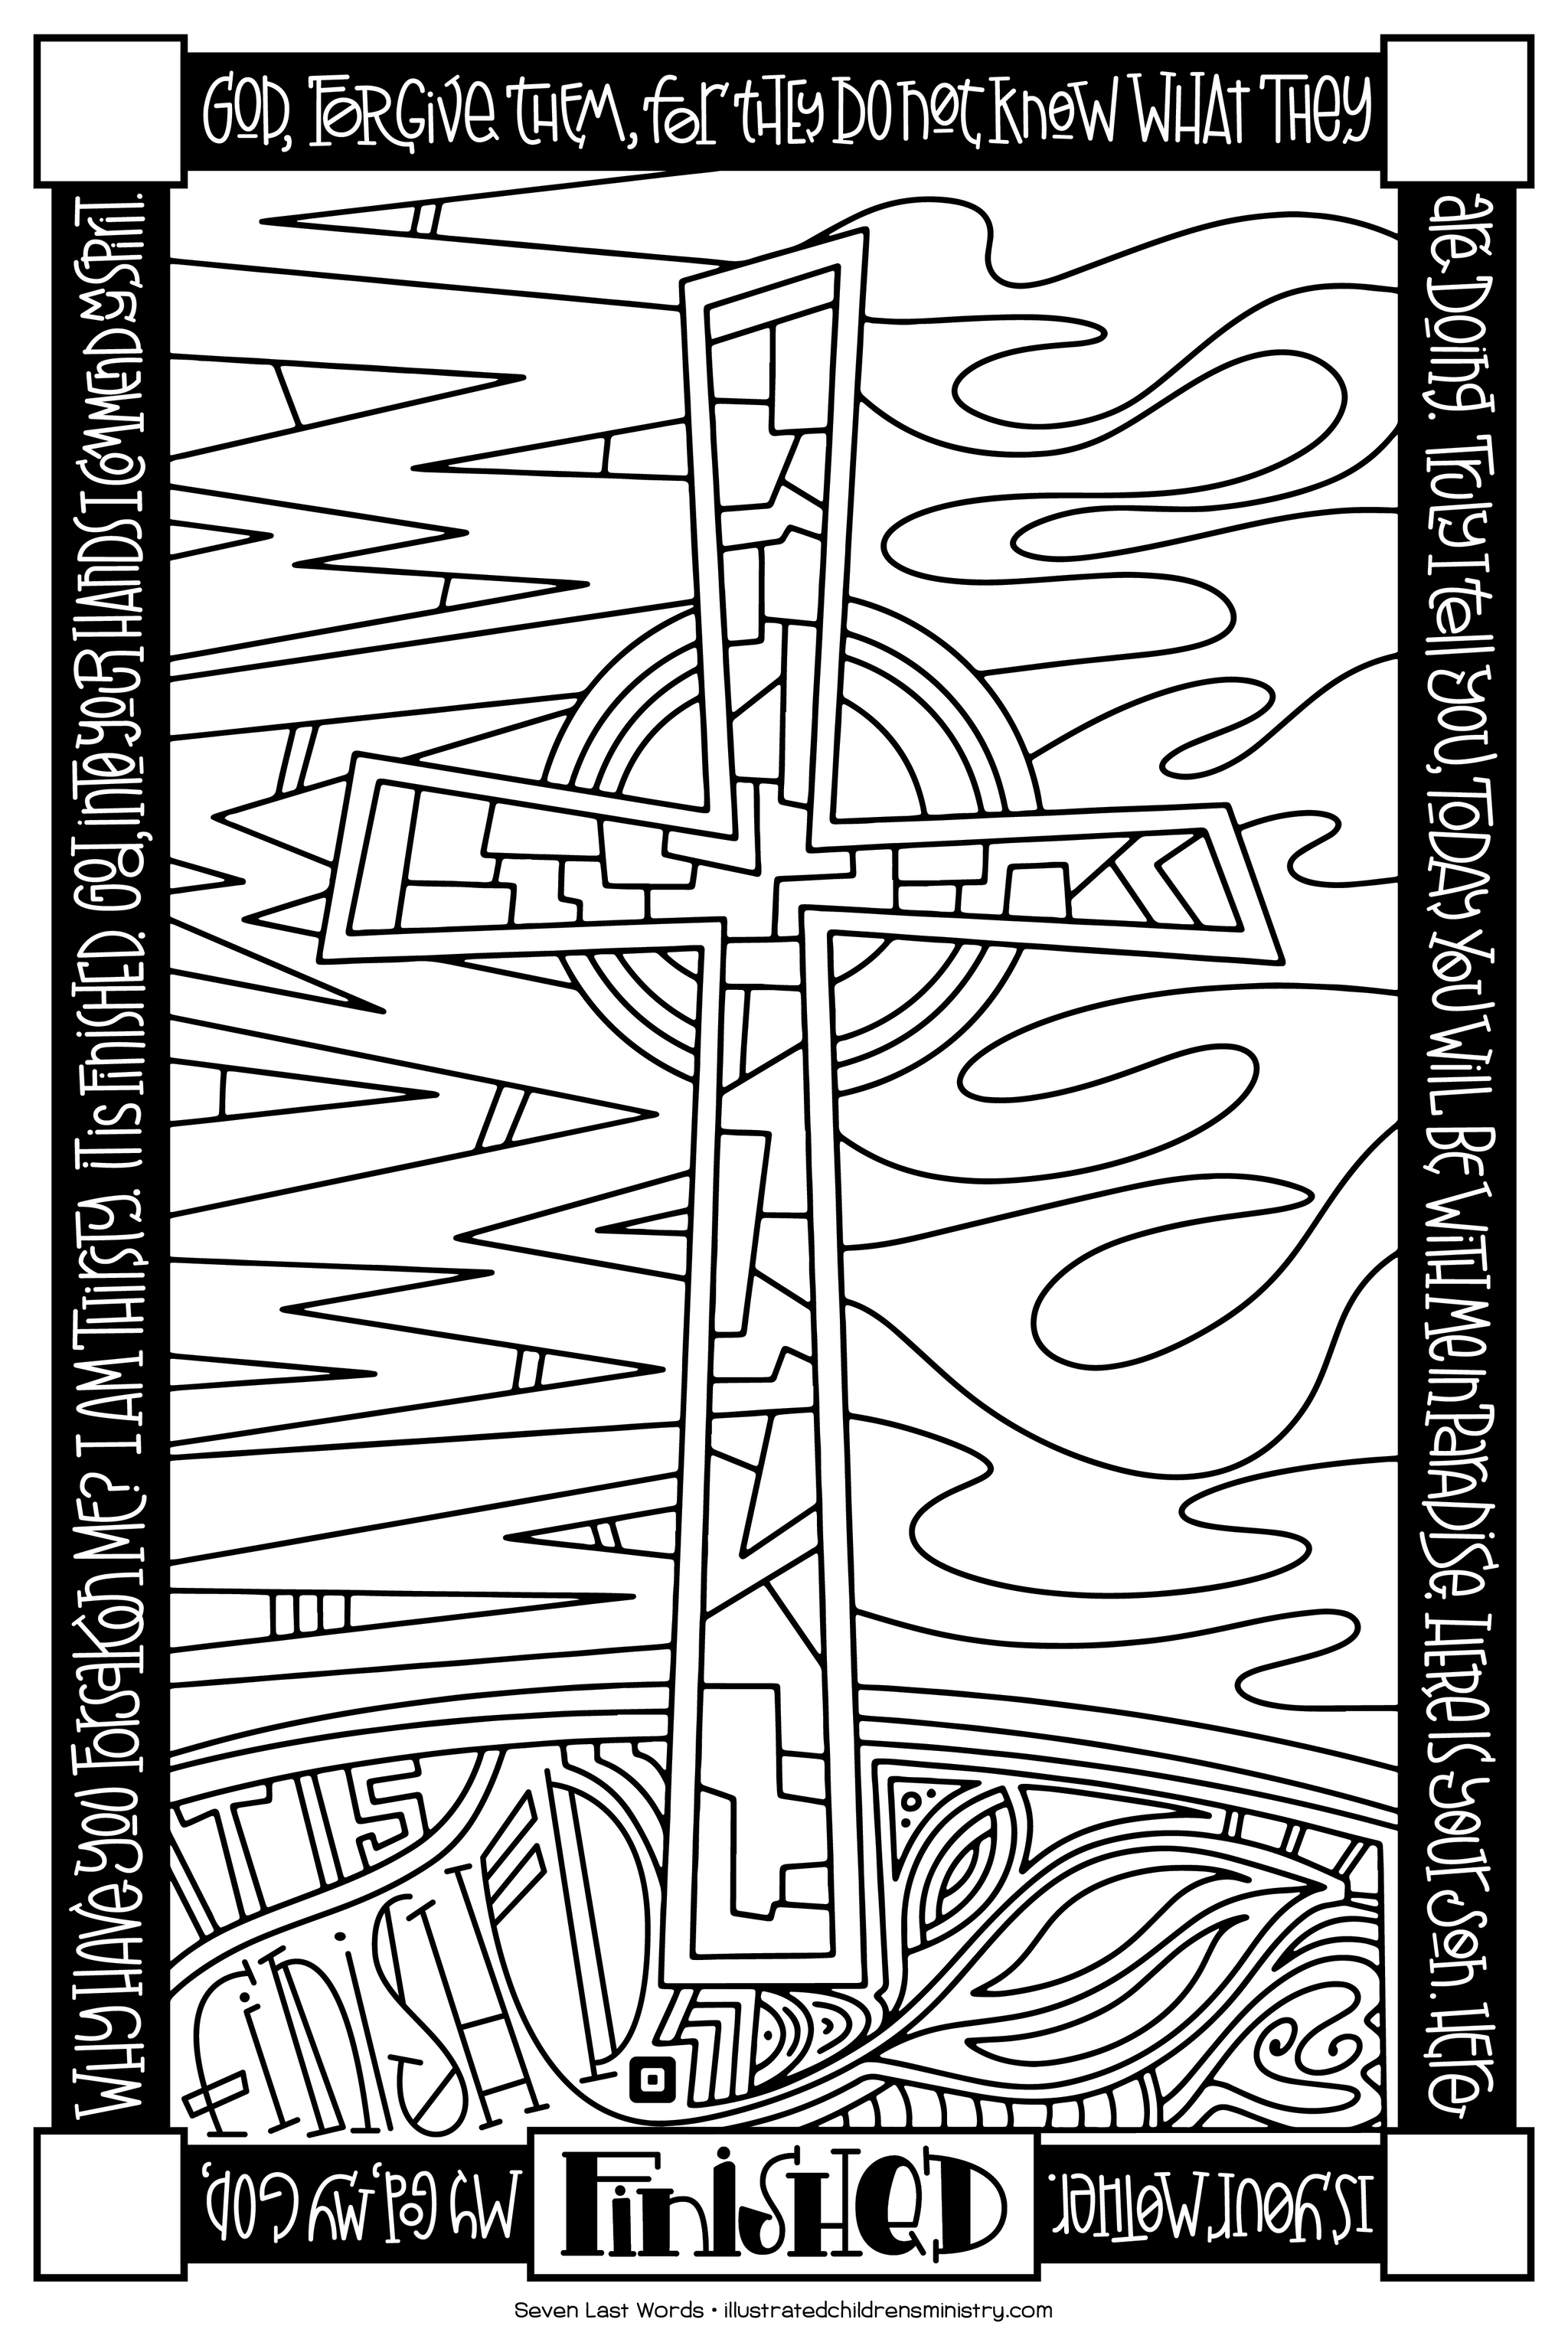 Seven Last Words Coloring Poster - Finished